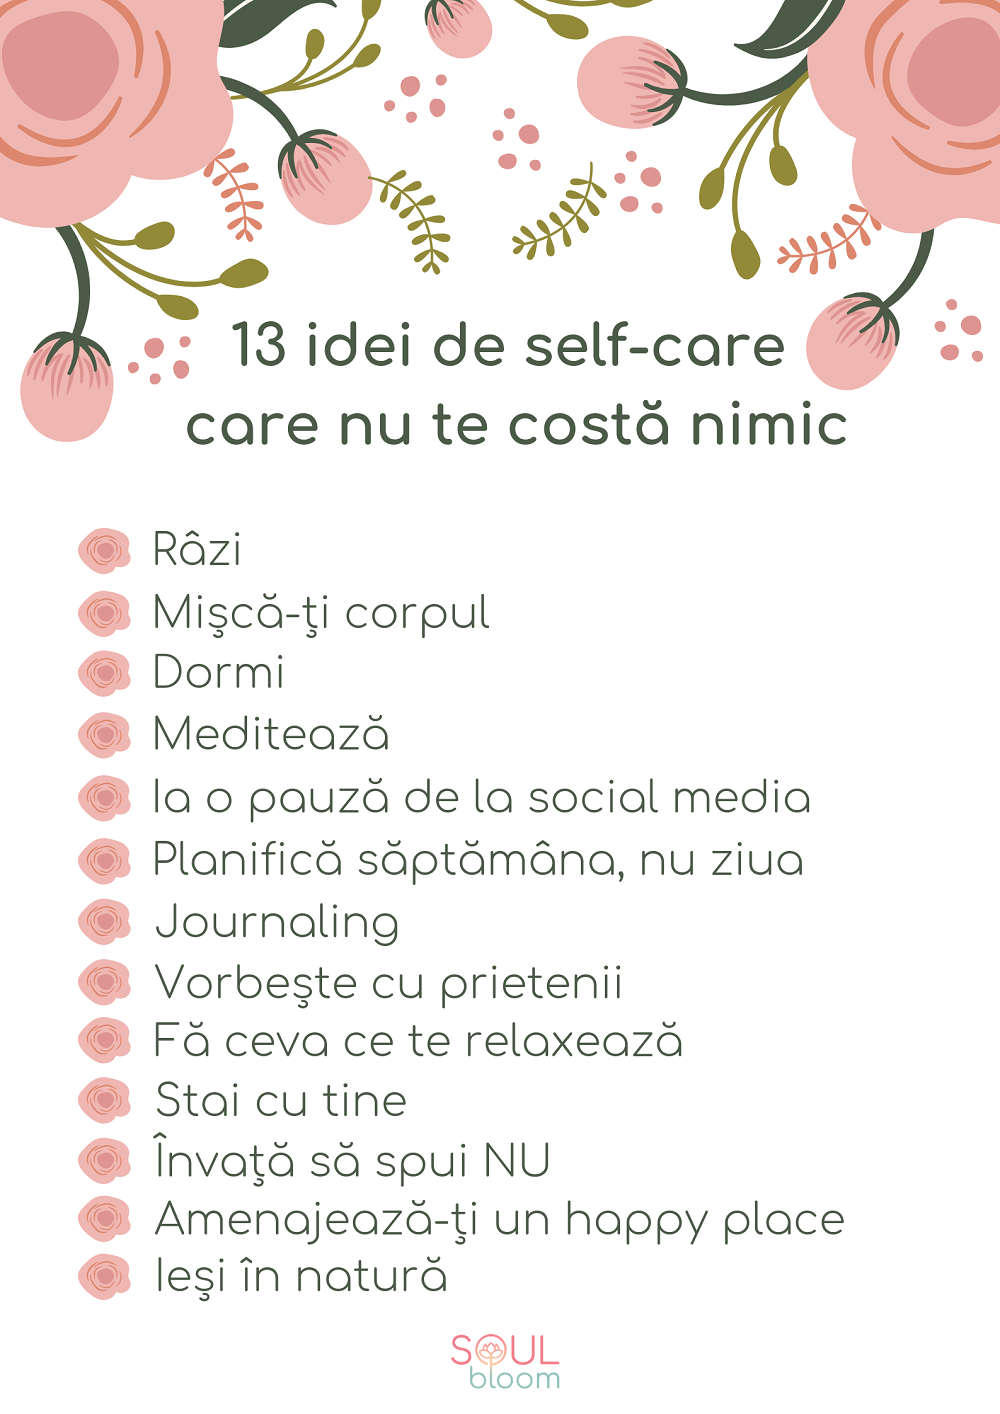 idei de self-care